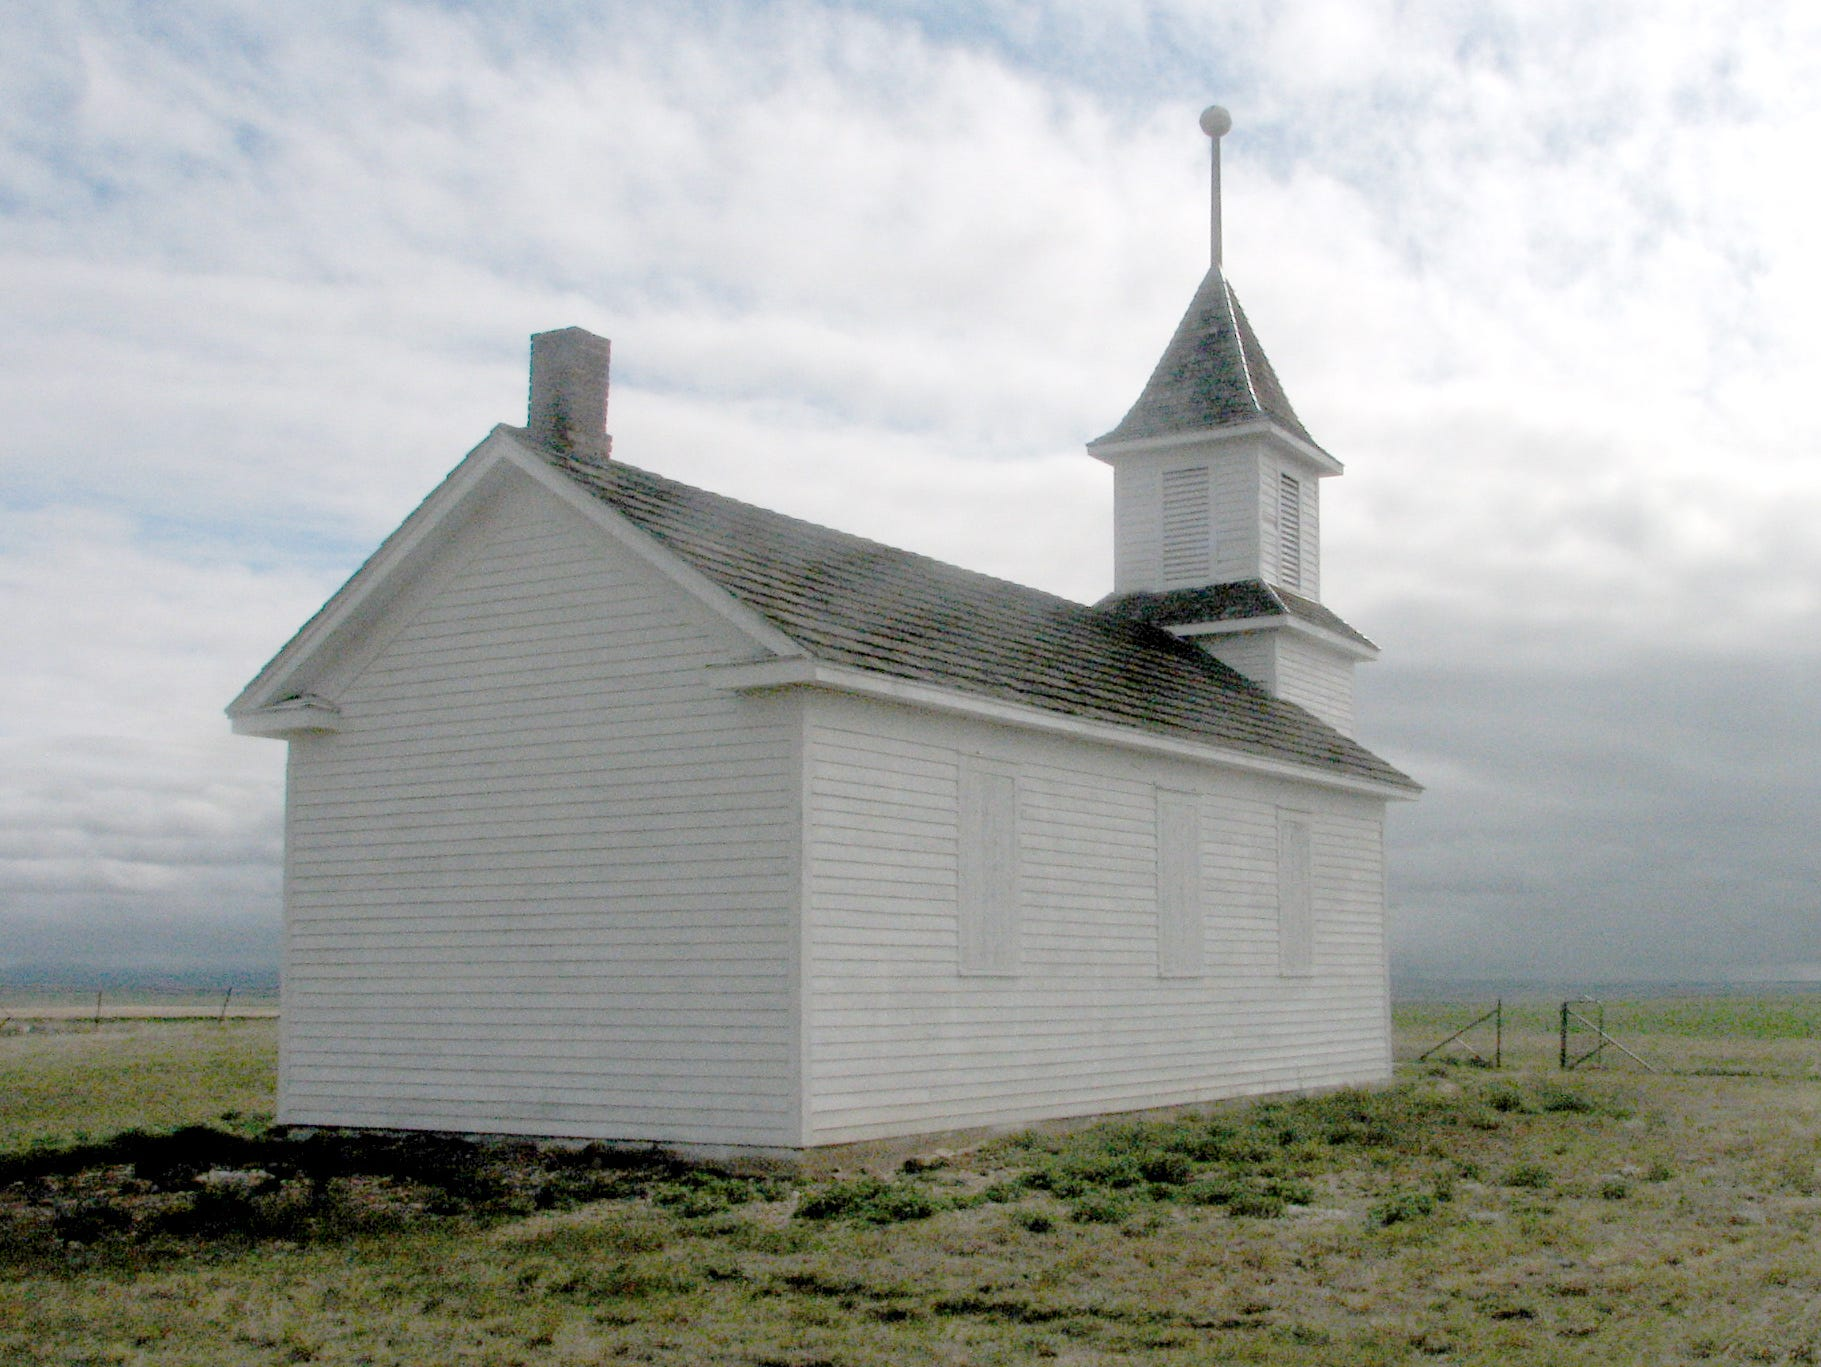 Bethany Lutheran Church, Toole County, 11 miles east of Oilmont.